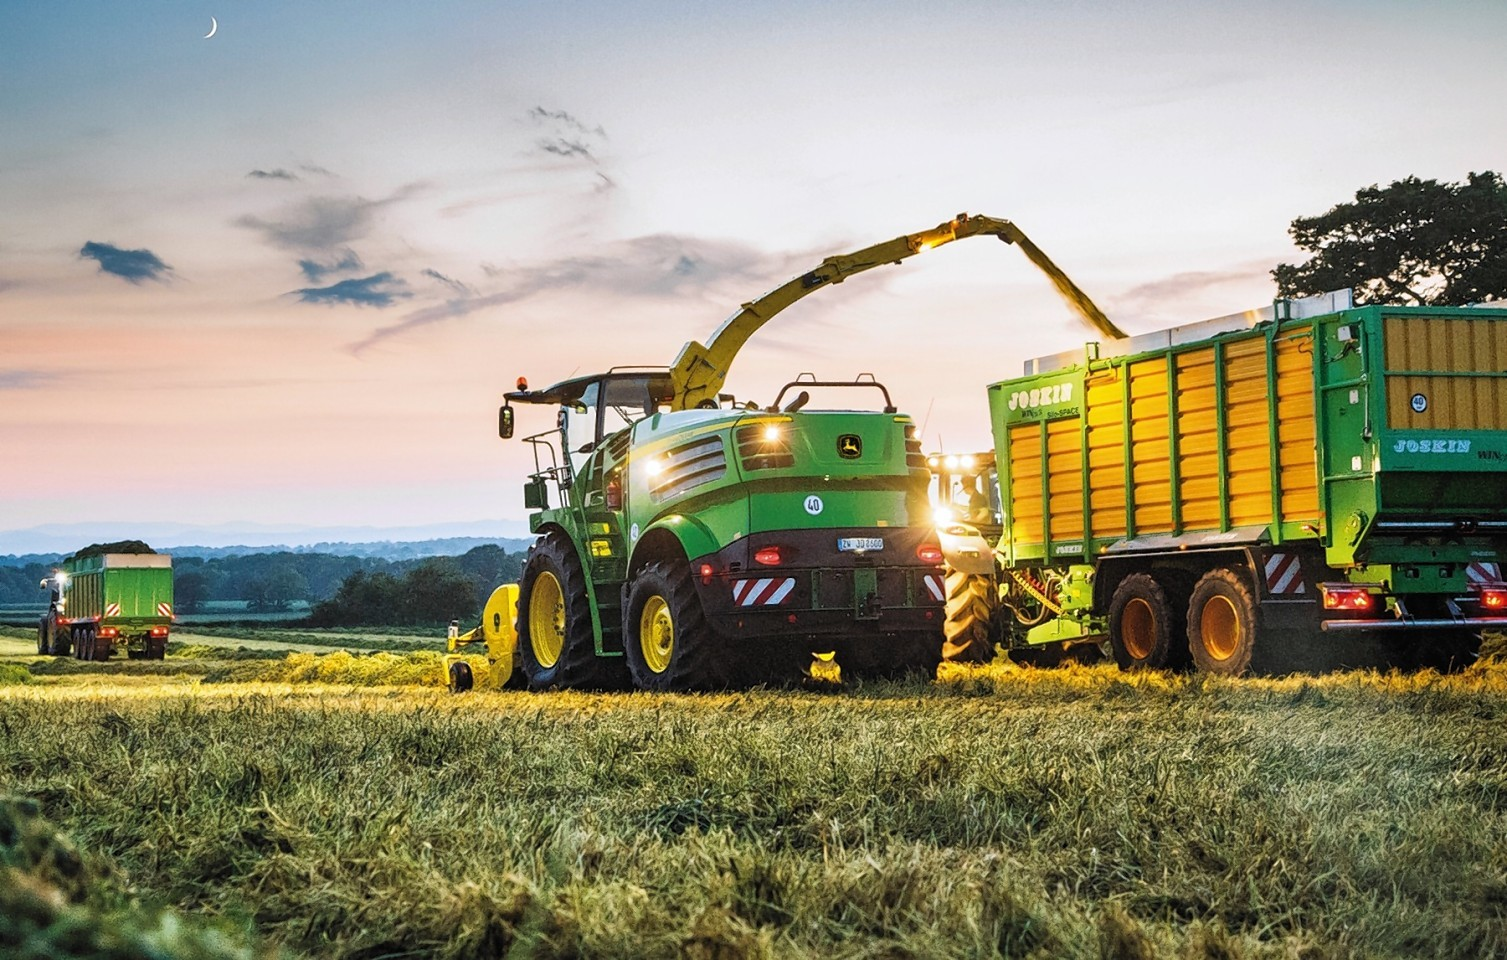 Machinery dealers across Europe are suffering